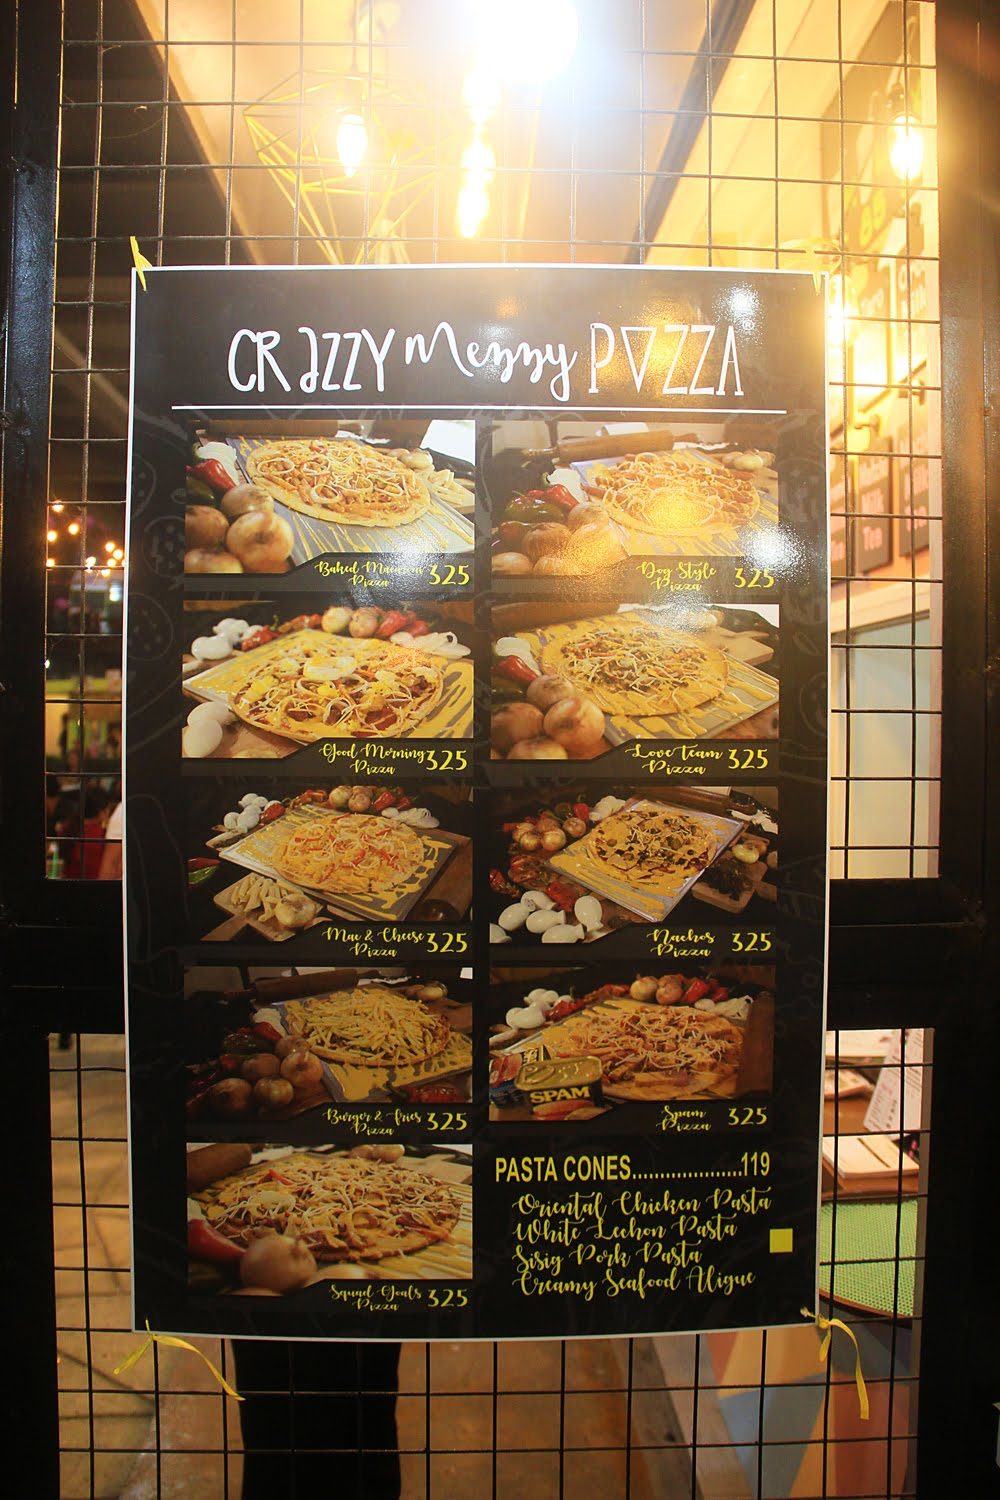 Crazzy Mezzy Pizza Menu